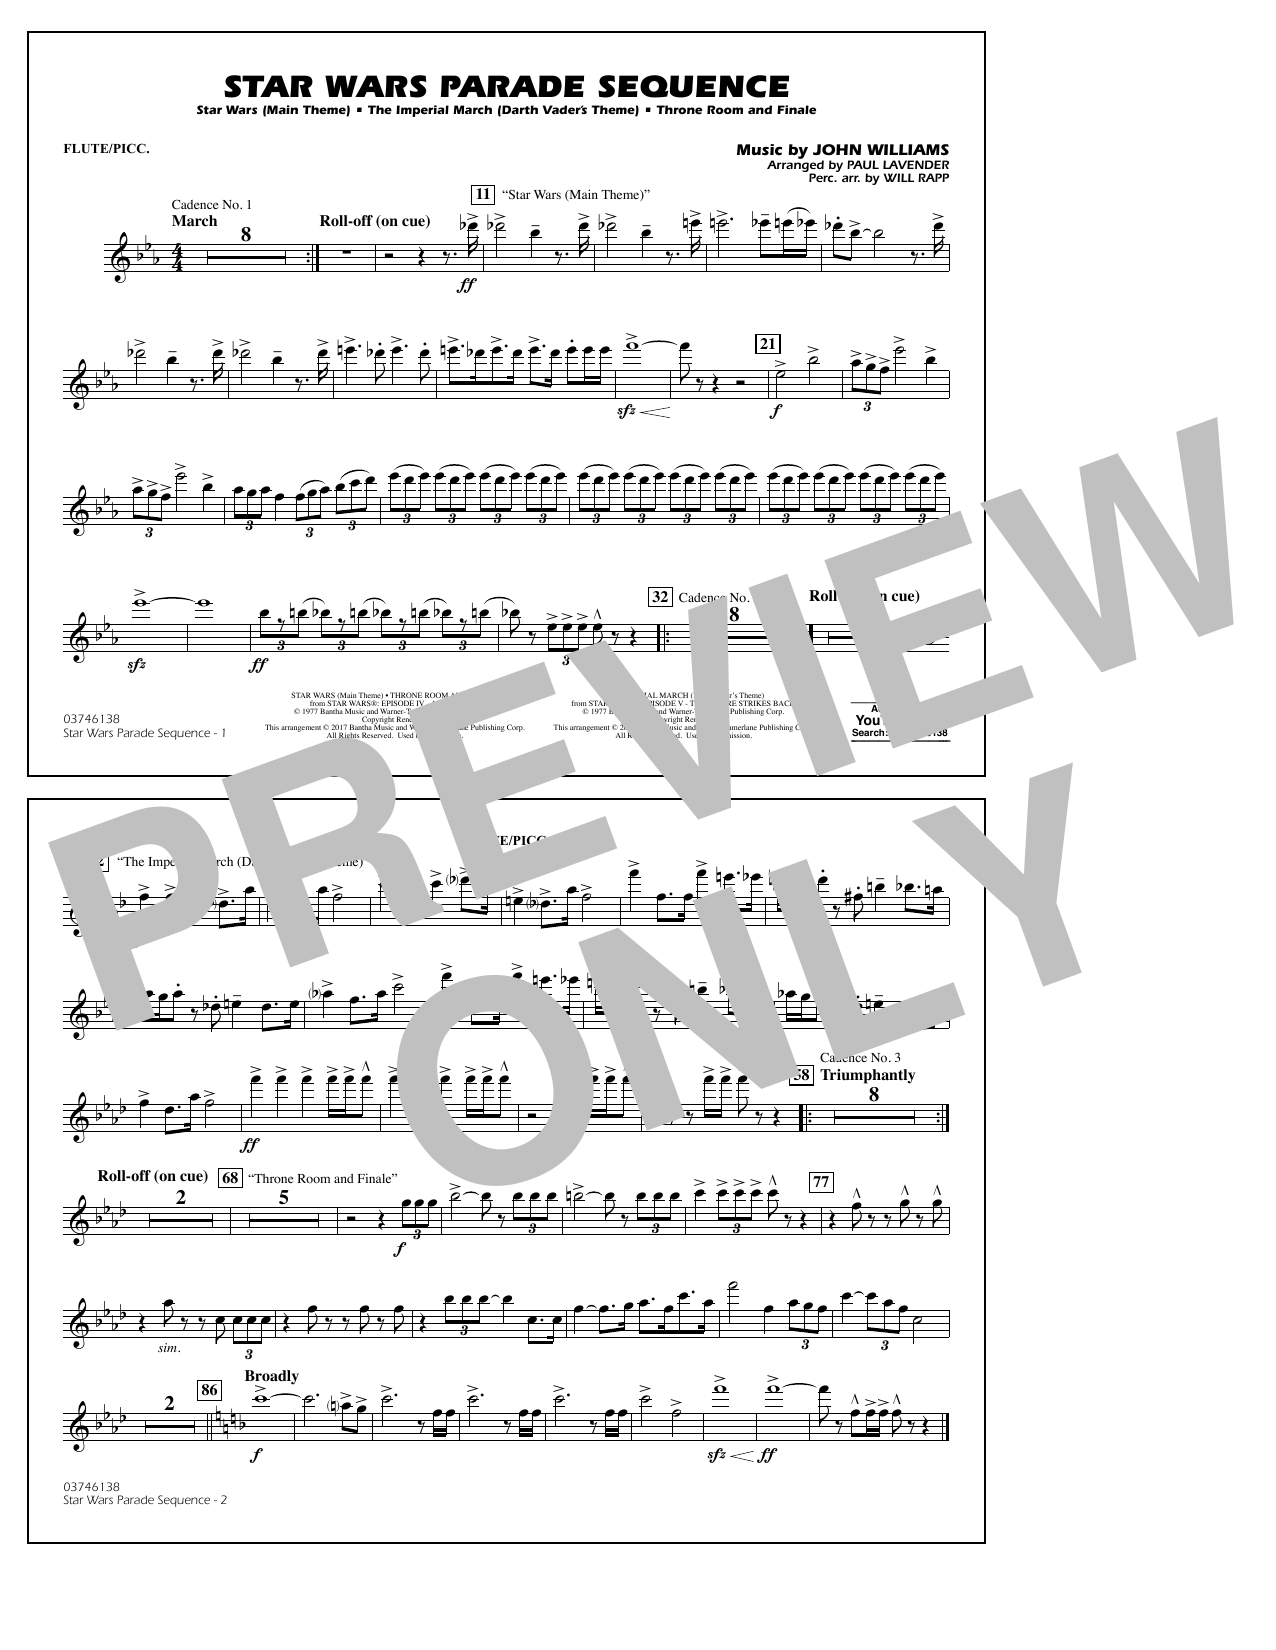 Star Wars Parade Sequence - Flute/Piccolo Sheet Music